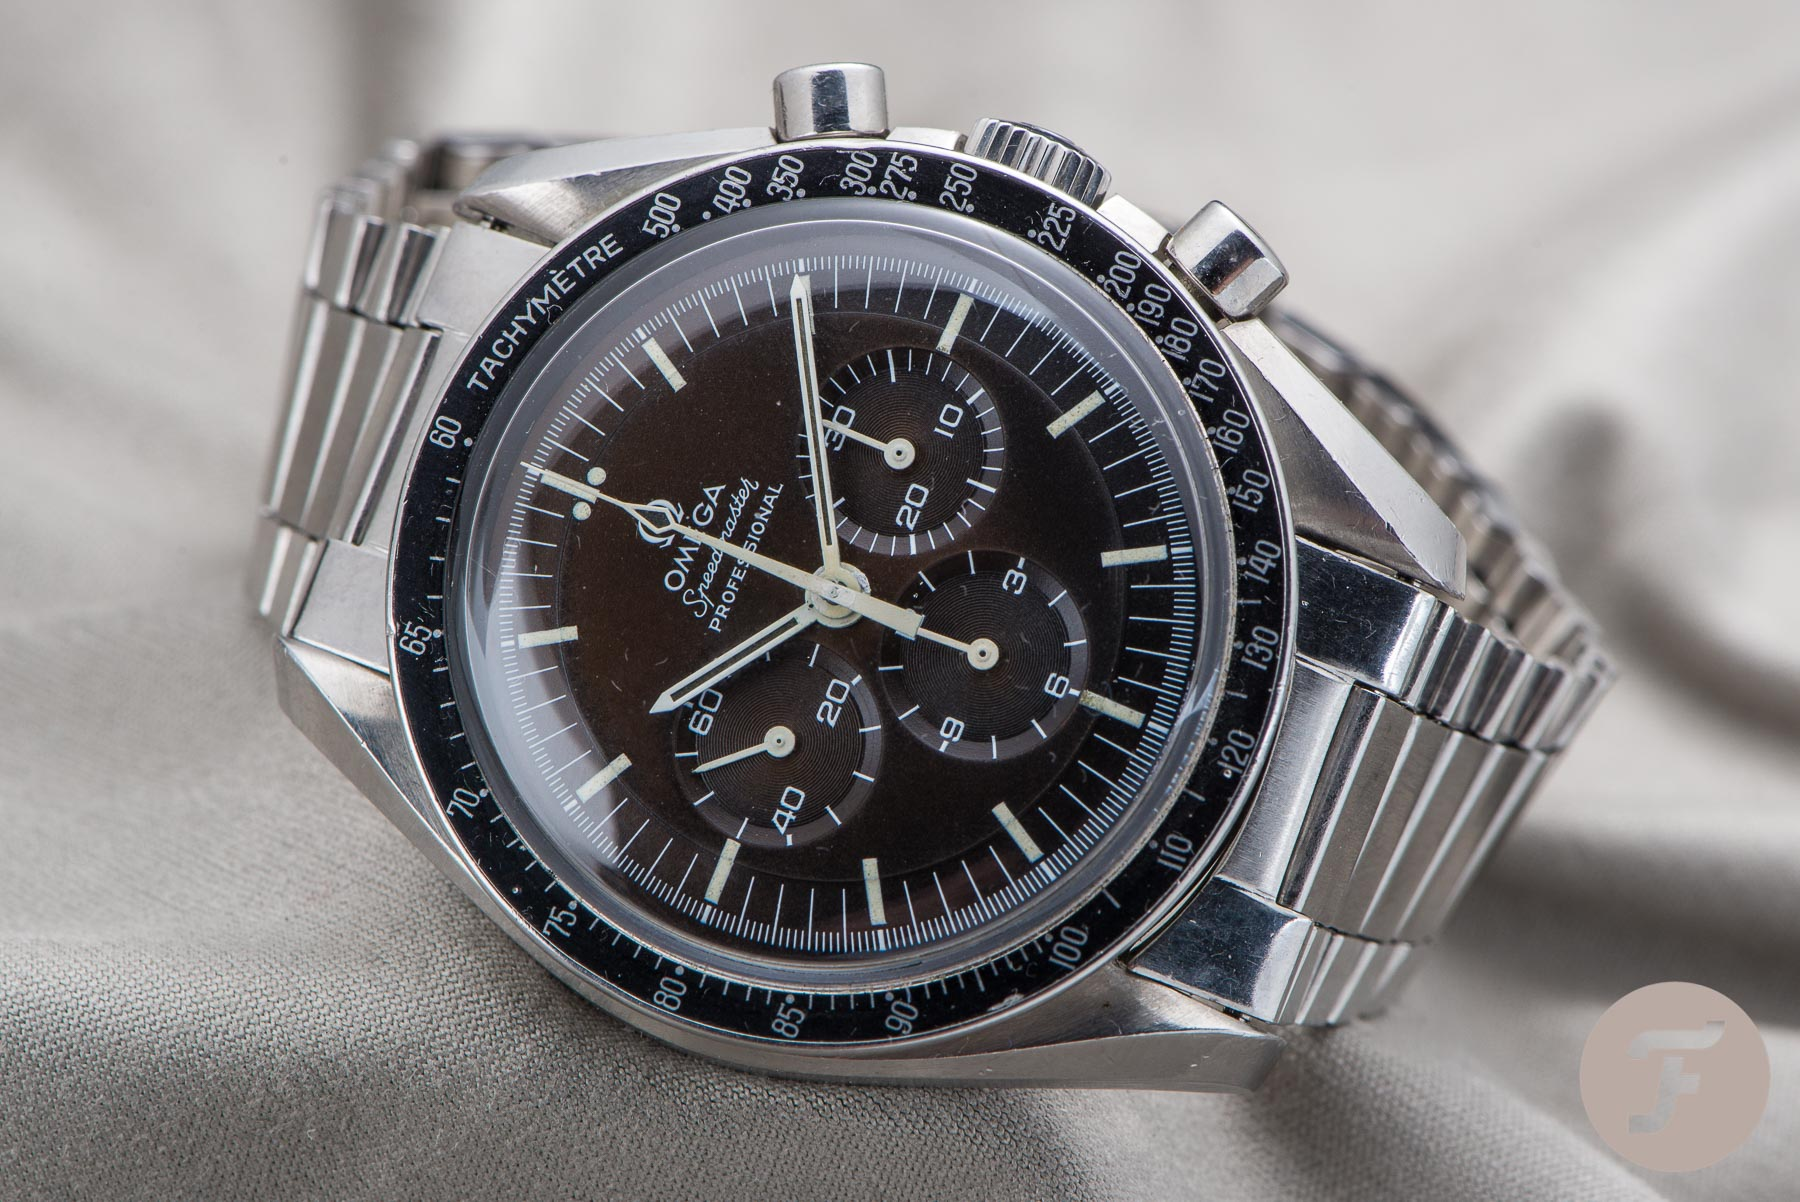 The Omega Speedmaster Watch Buyer's Guide — Part 1